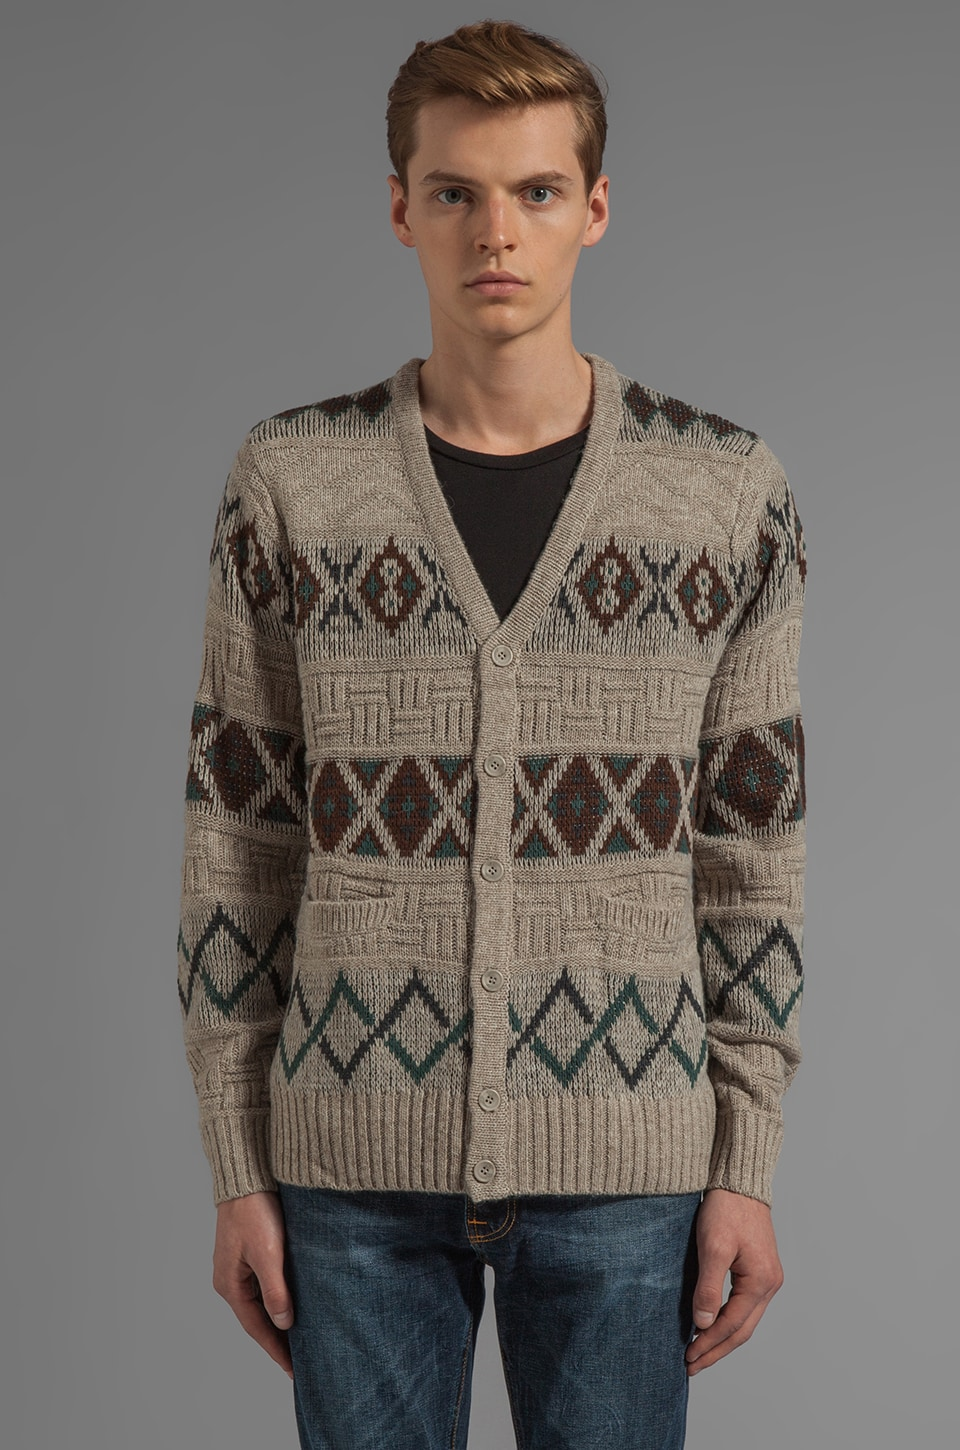 RVCA Crosby Cardigan in Peyote